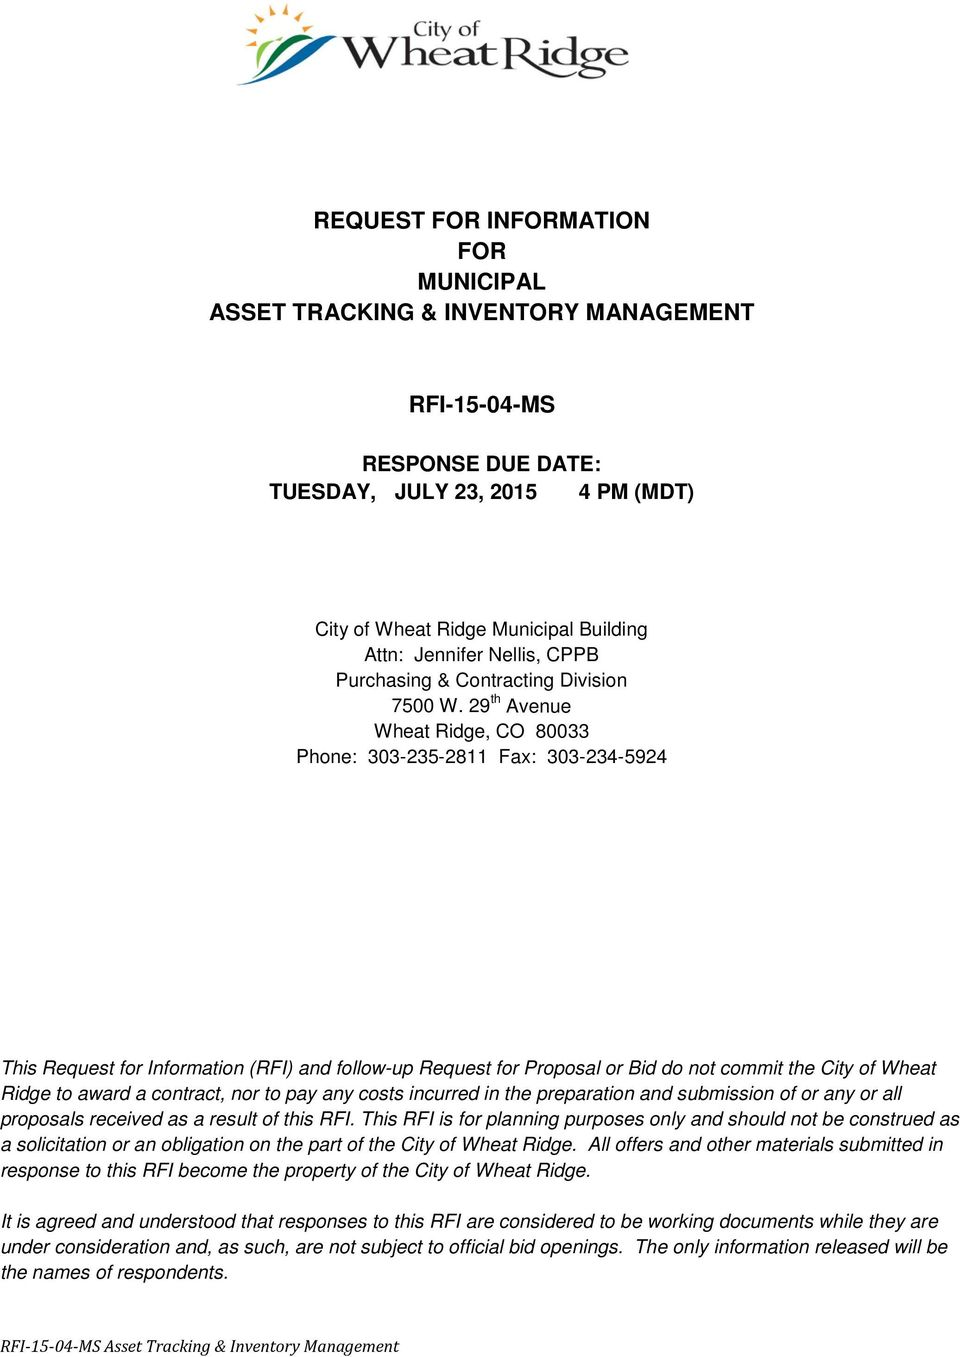 29 th Avenue Wheat Ridge, CO 80033 Phone: 303-235-2811 Fax: 303-234-5924 This Request for Information (RFI) and follow-up Request for Proposal or Bid do not commit the City of Wheat Ridge to award a